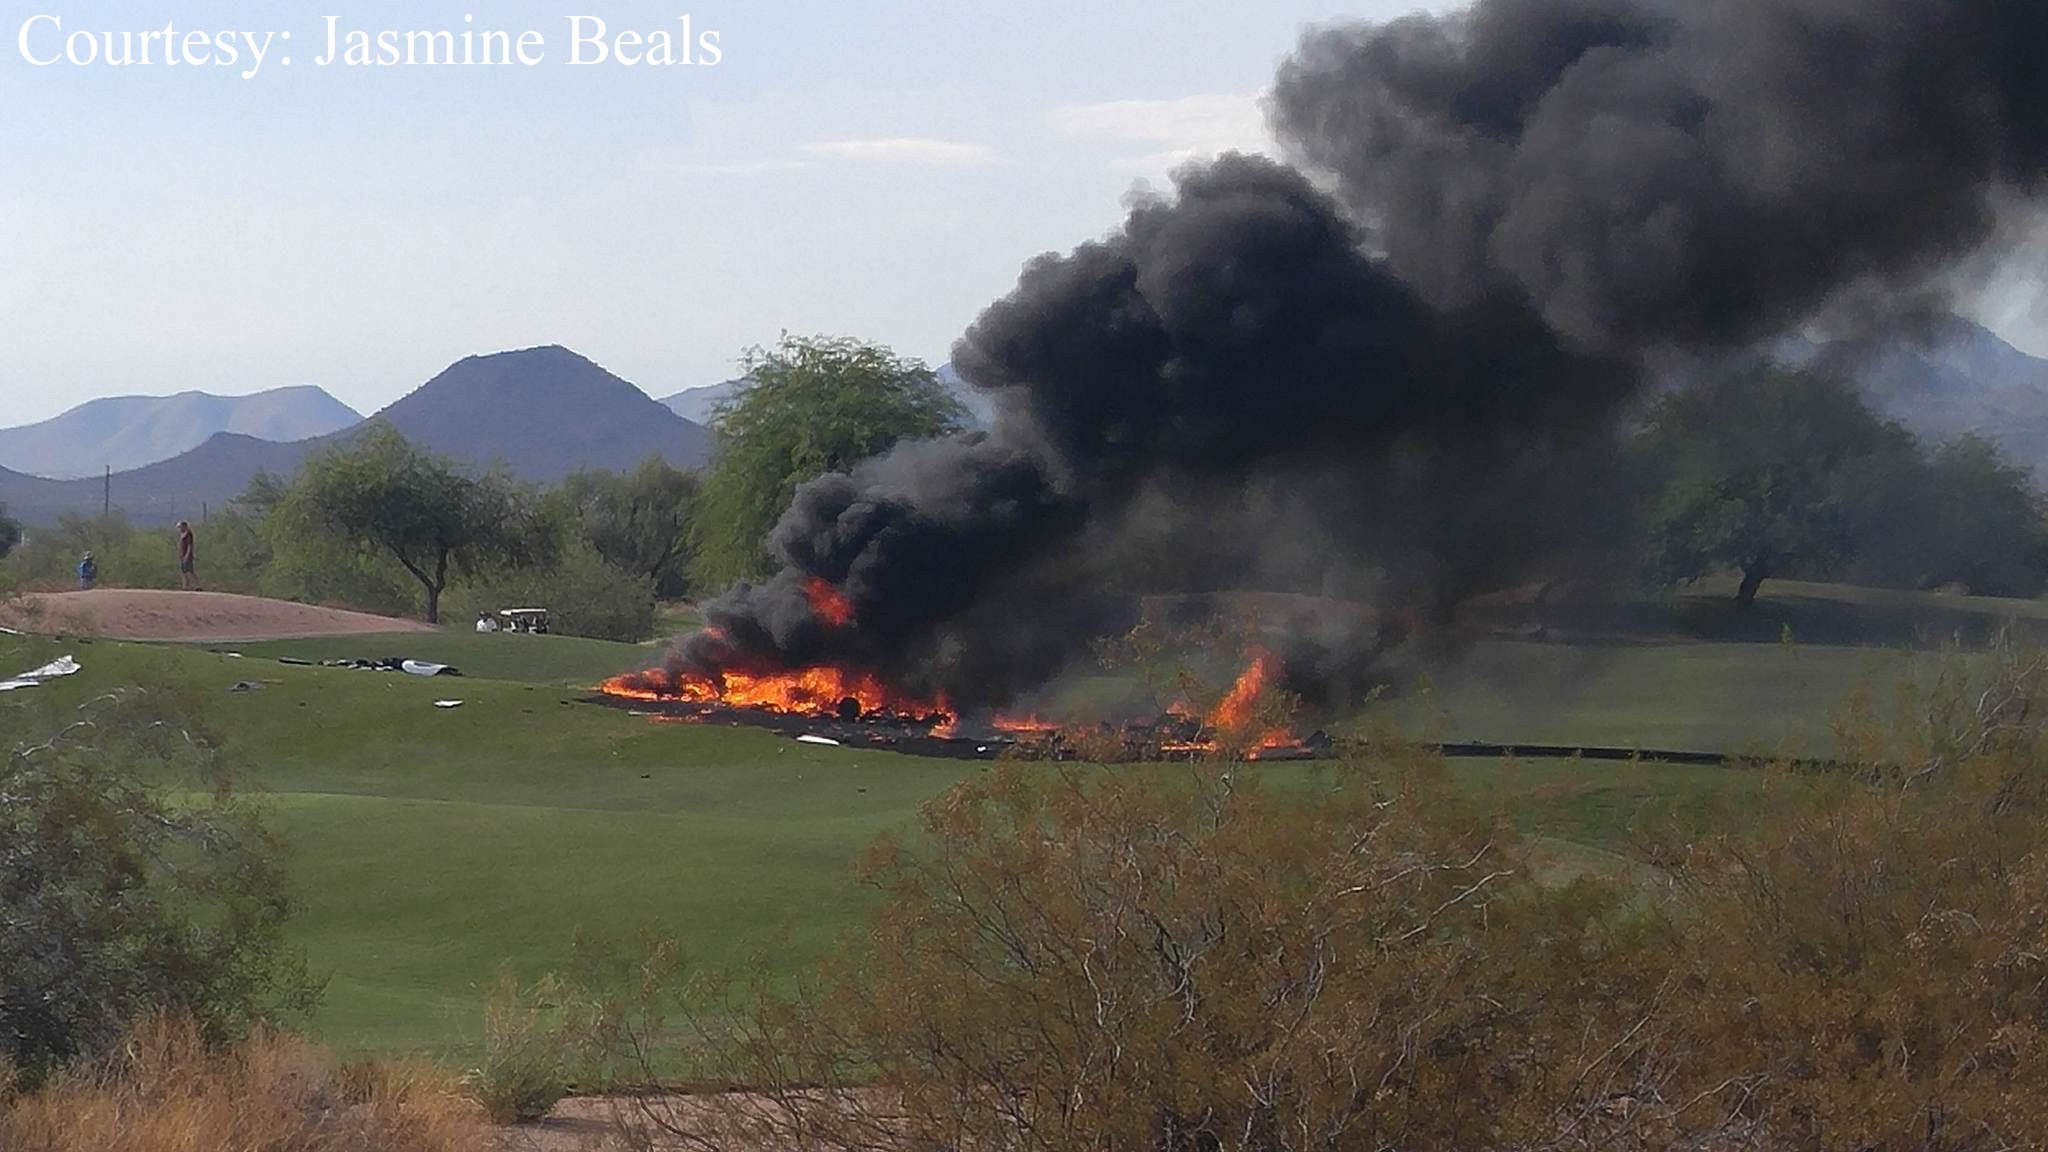 Two people were killed in a plane crash on a golf course in Mesa. (Source: Jasmine Beals)